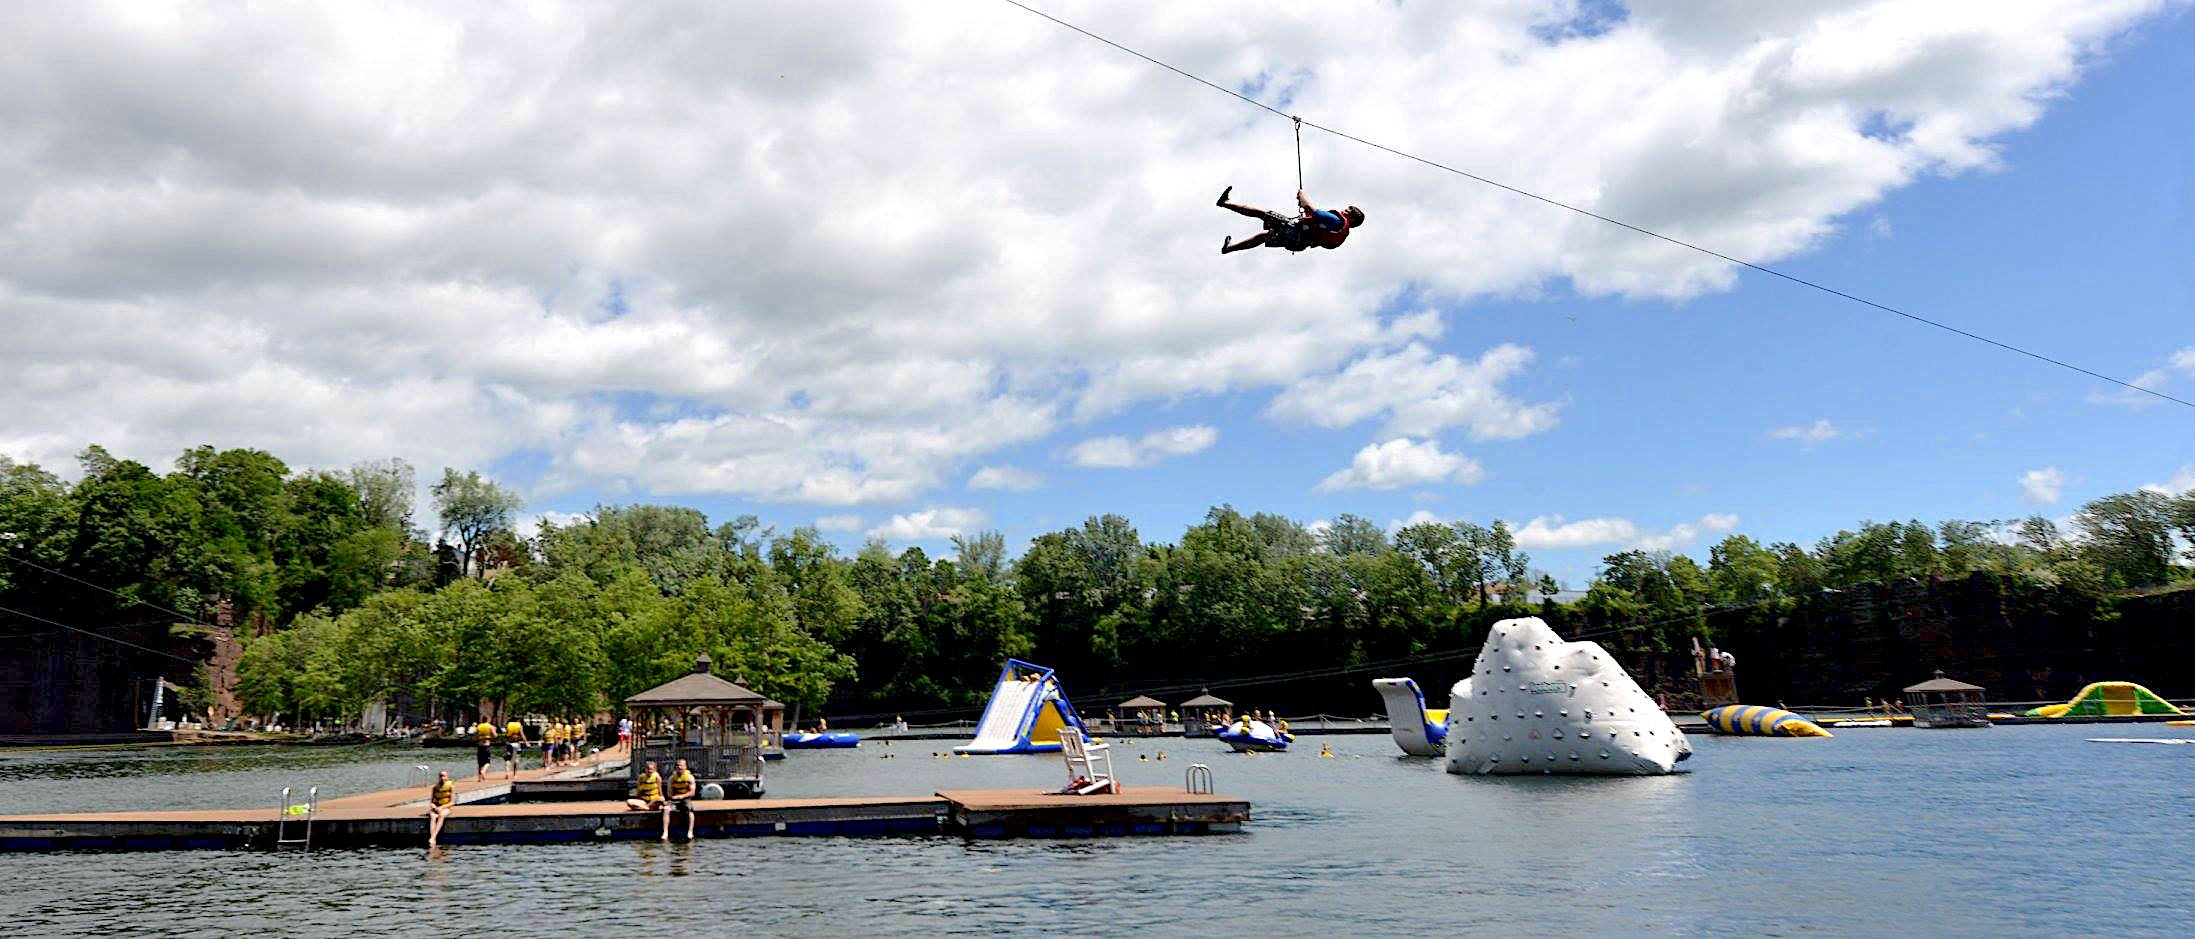 Monday: Brownstone Park ($40) - Brownstone Park is a water park which includes: Swimming, Hiking and Biking, Kayaks, Cliff Jumping, Rock Climbing, Zip Lines, Waterslide, Rope Swing, Scuba Diving, and Inflatable Obstacles.Evening: Free time + Free PizzaBrown Stone Waiver - Link